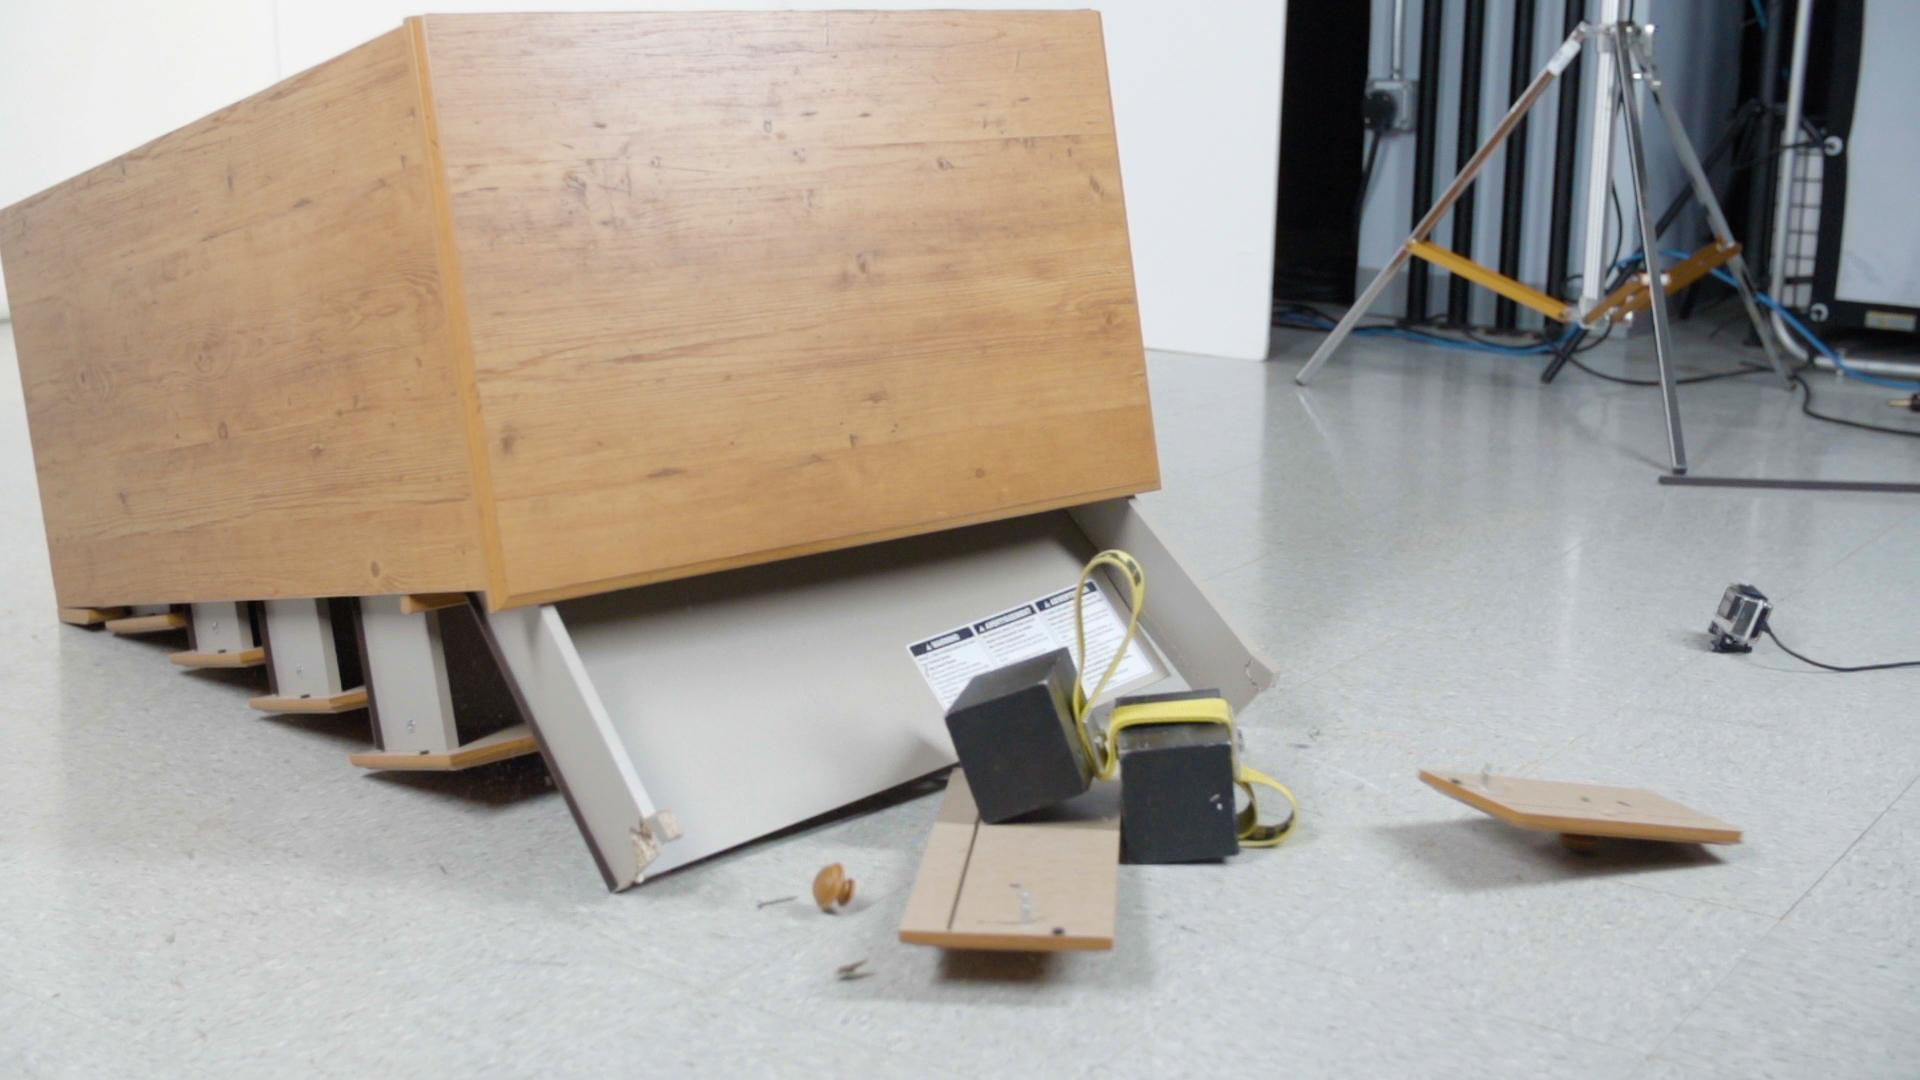 Furniture Tip Overs A Hidden Hazard In Your Home Consumer Reports